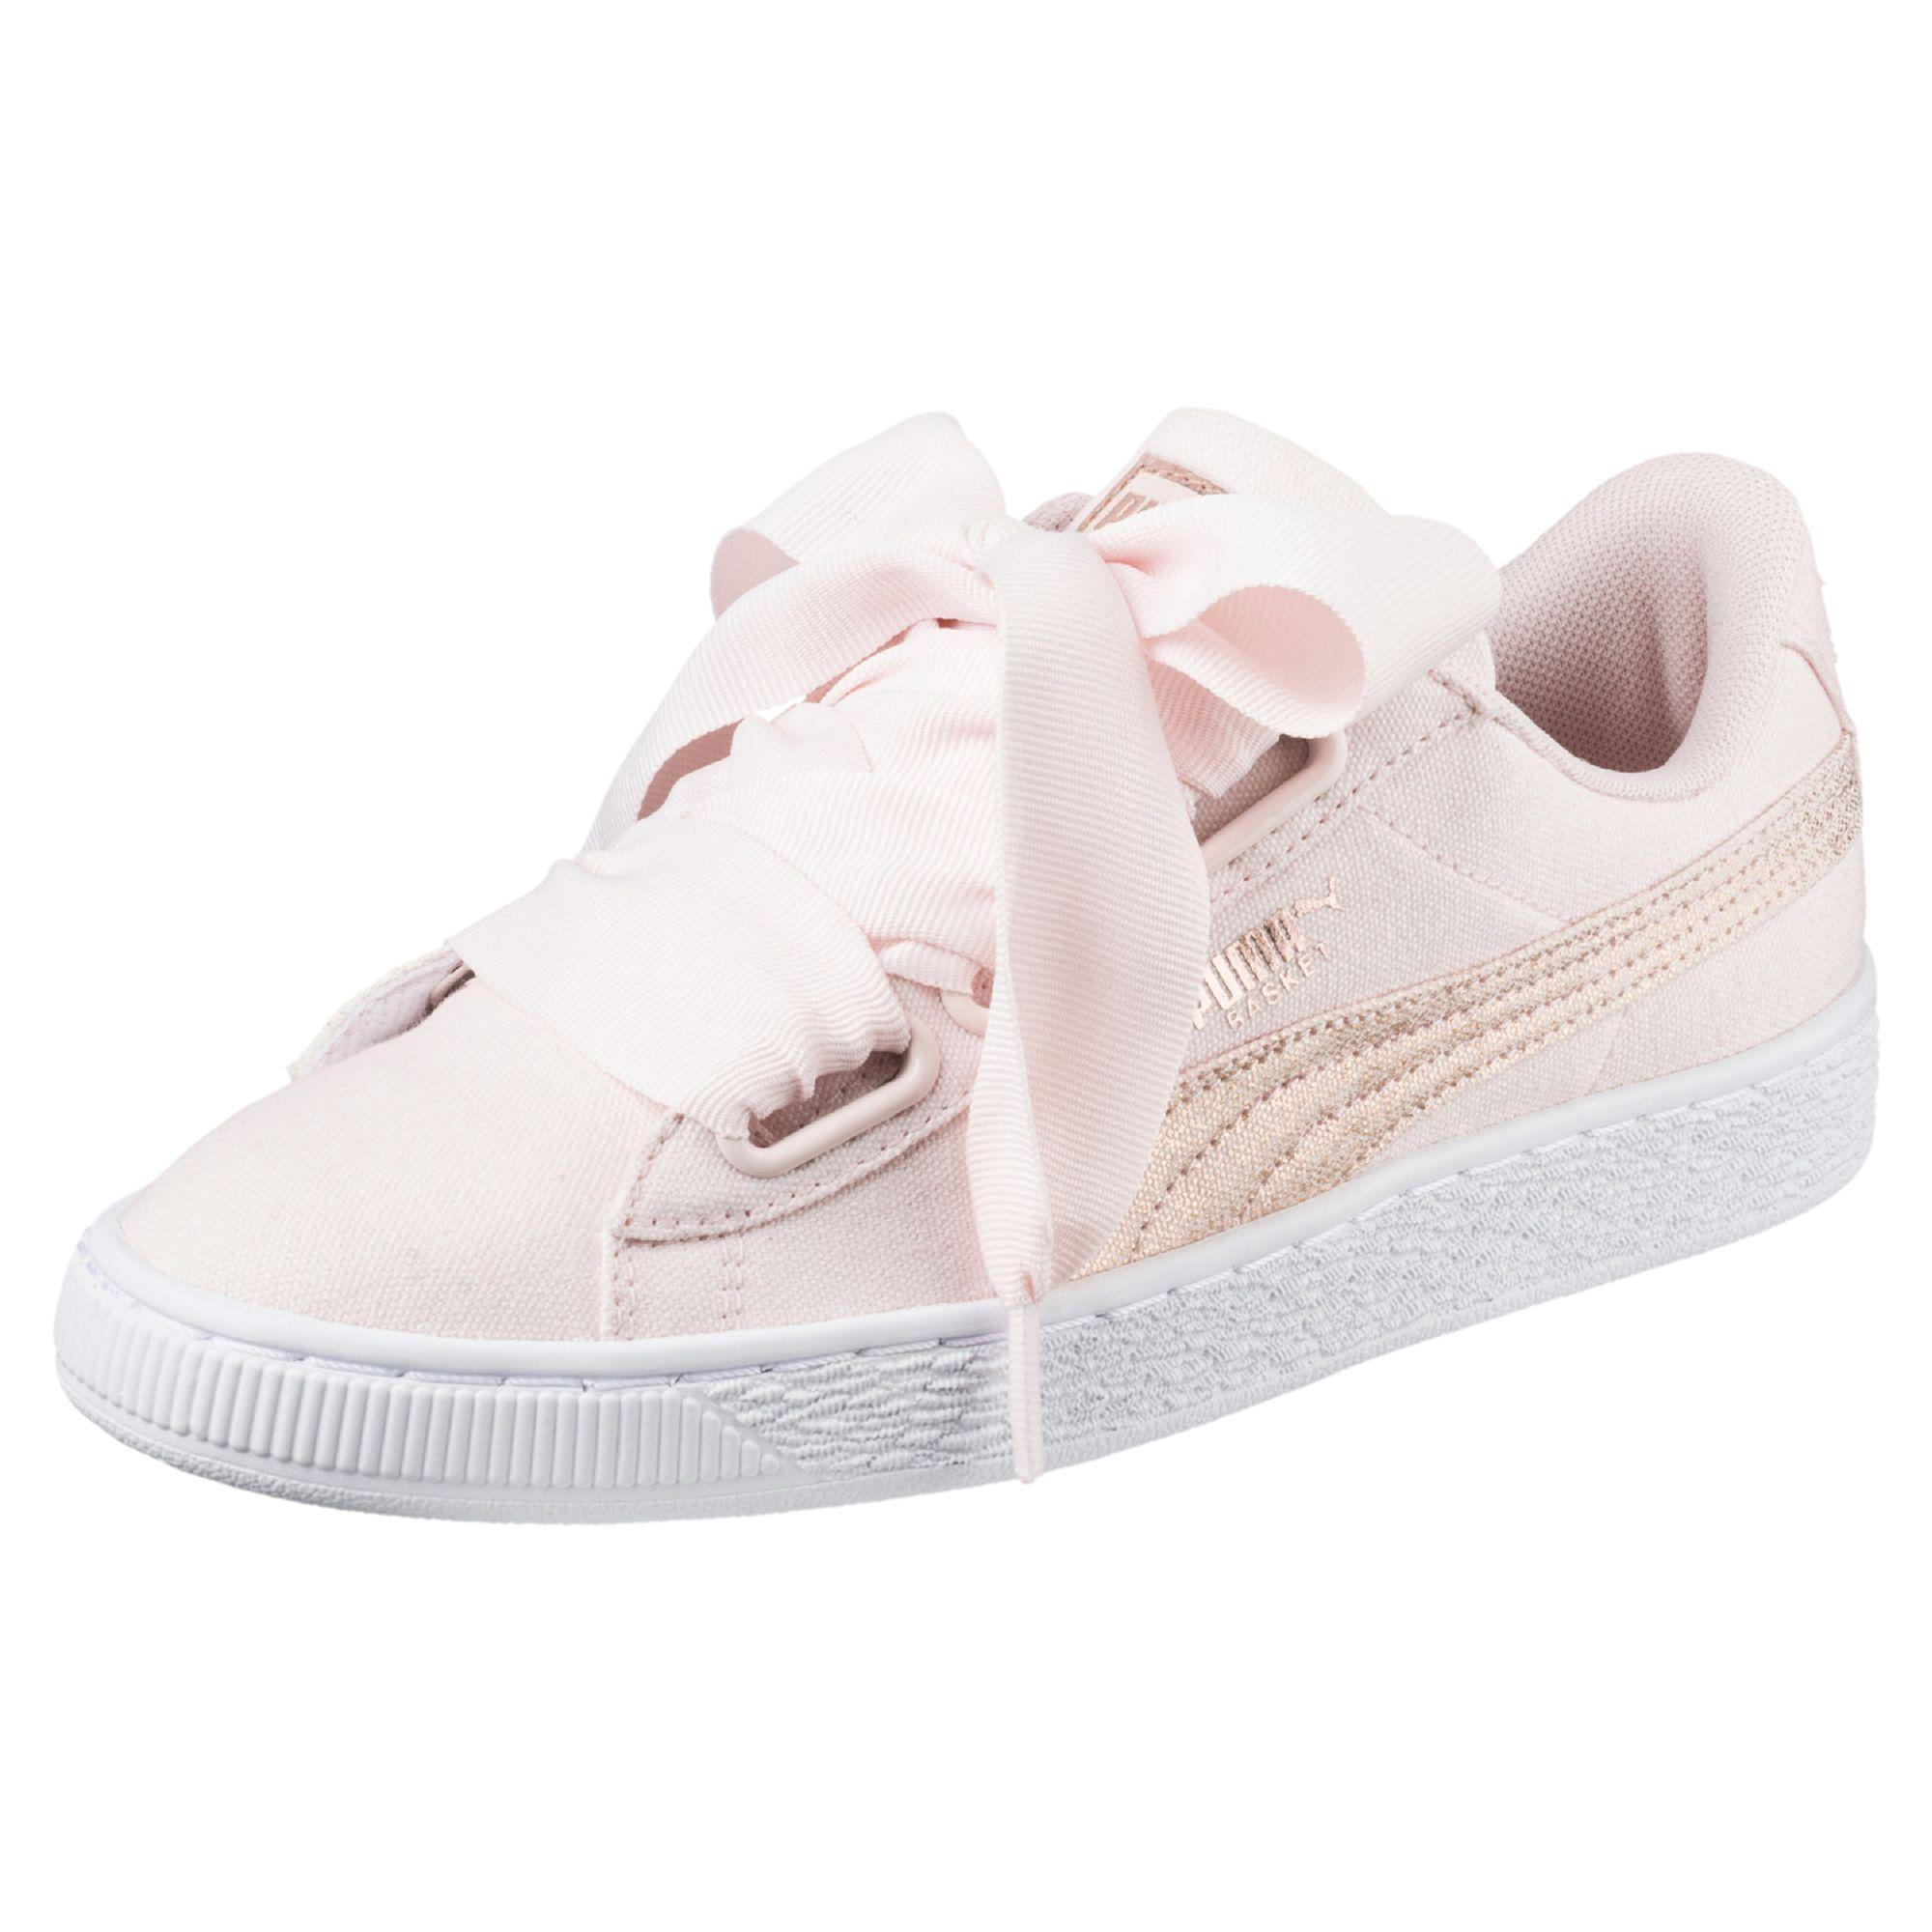 Pearl Canvas Rose Gold Basket White Puma Heart Woman Shoes O80PnwXk